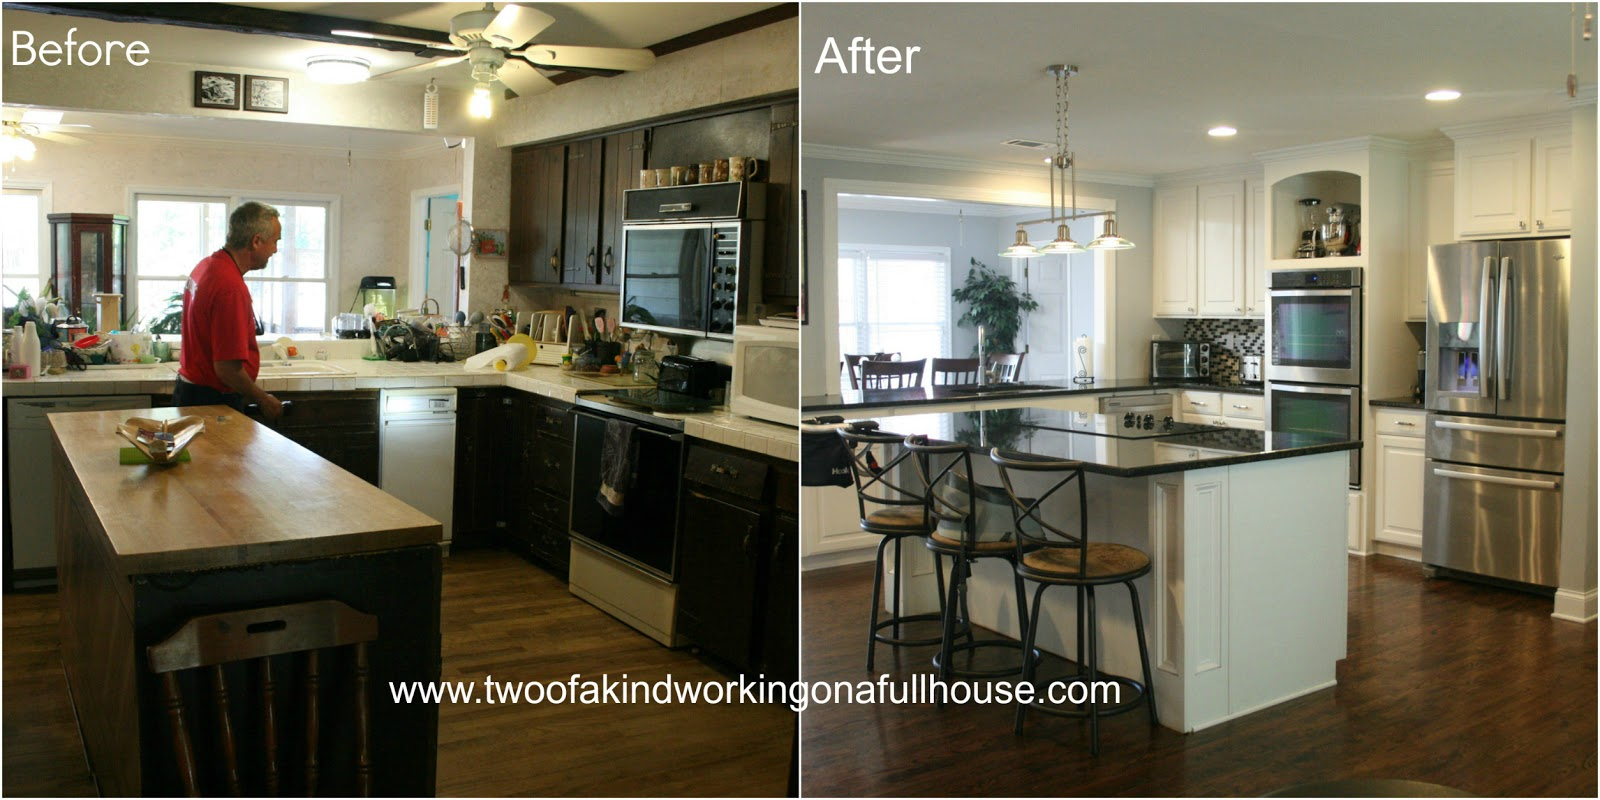 Wordless wednesday before after kitchen remodel pictures for Kitchen renovation pictures